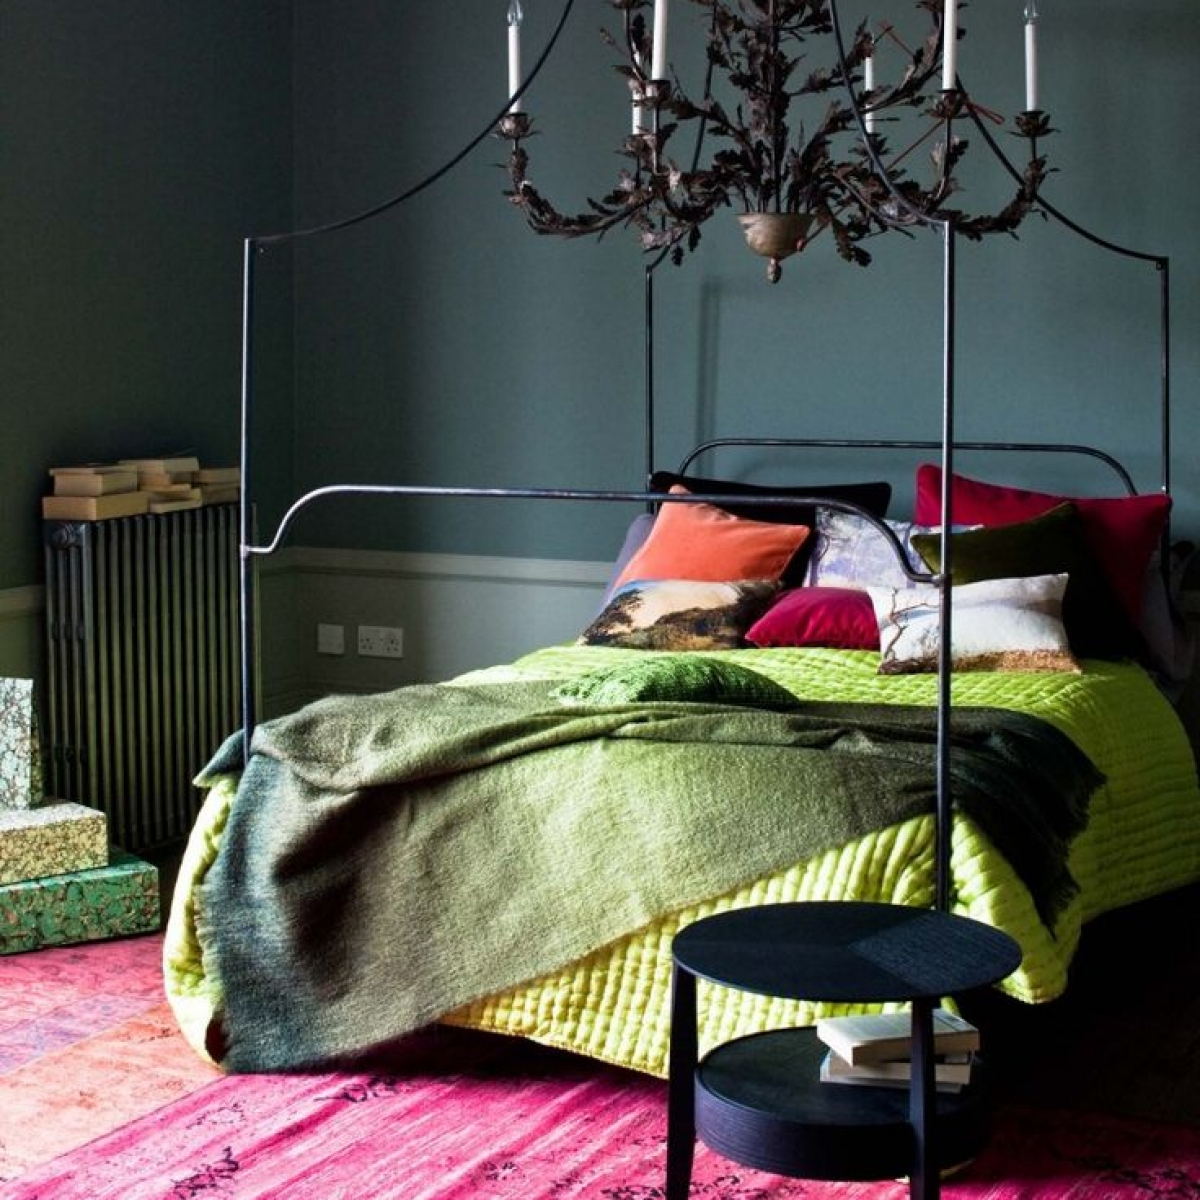 Decorating ideas for dark rooms sophie robinson - Interior decorations for bedrooms ...